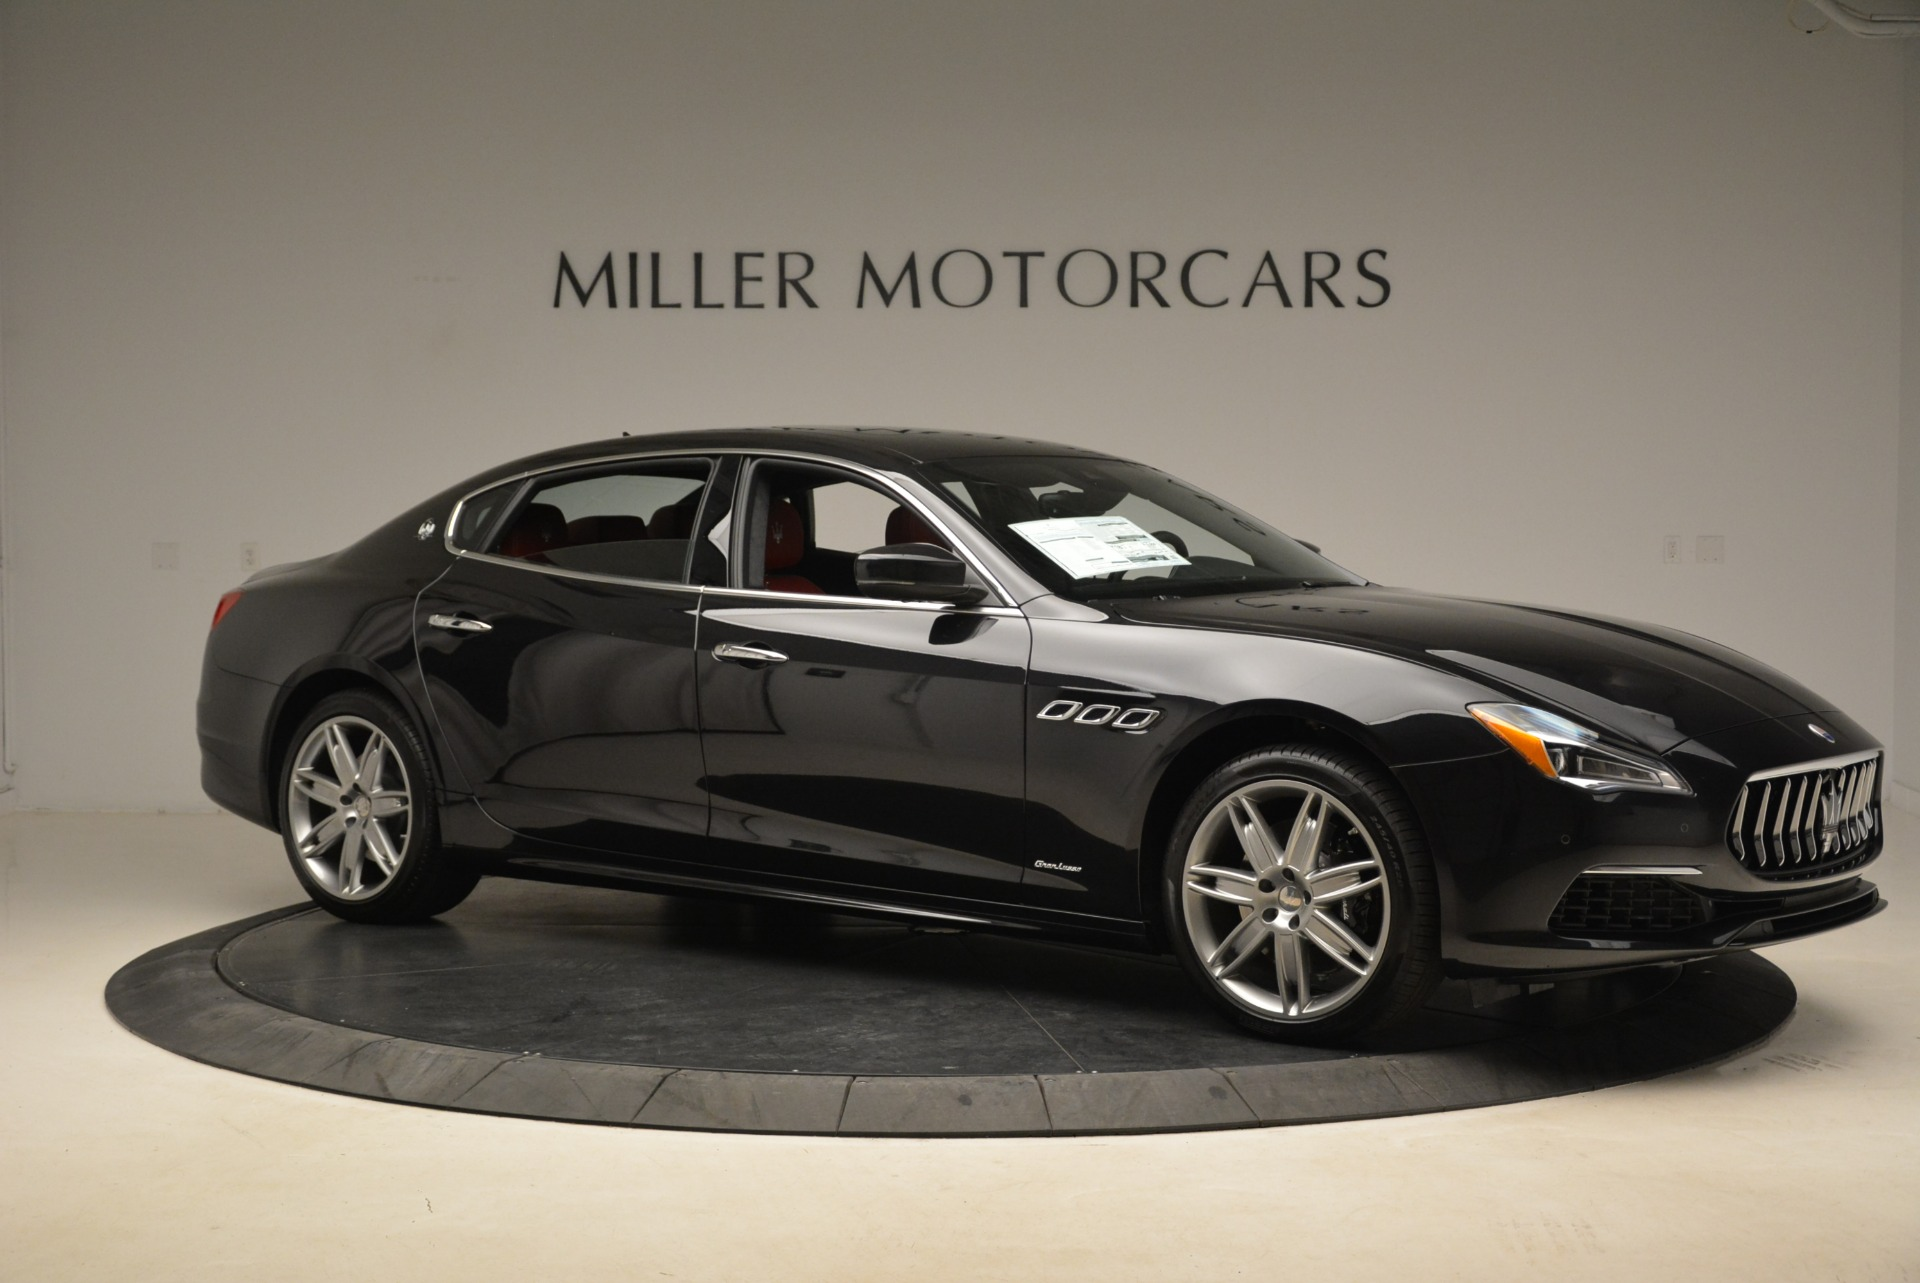 New 2018 Maserati Quattroporte S Q4 GranLusso For Sale In Westport, CT 2391_p10